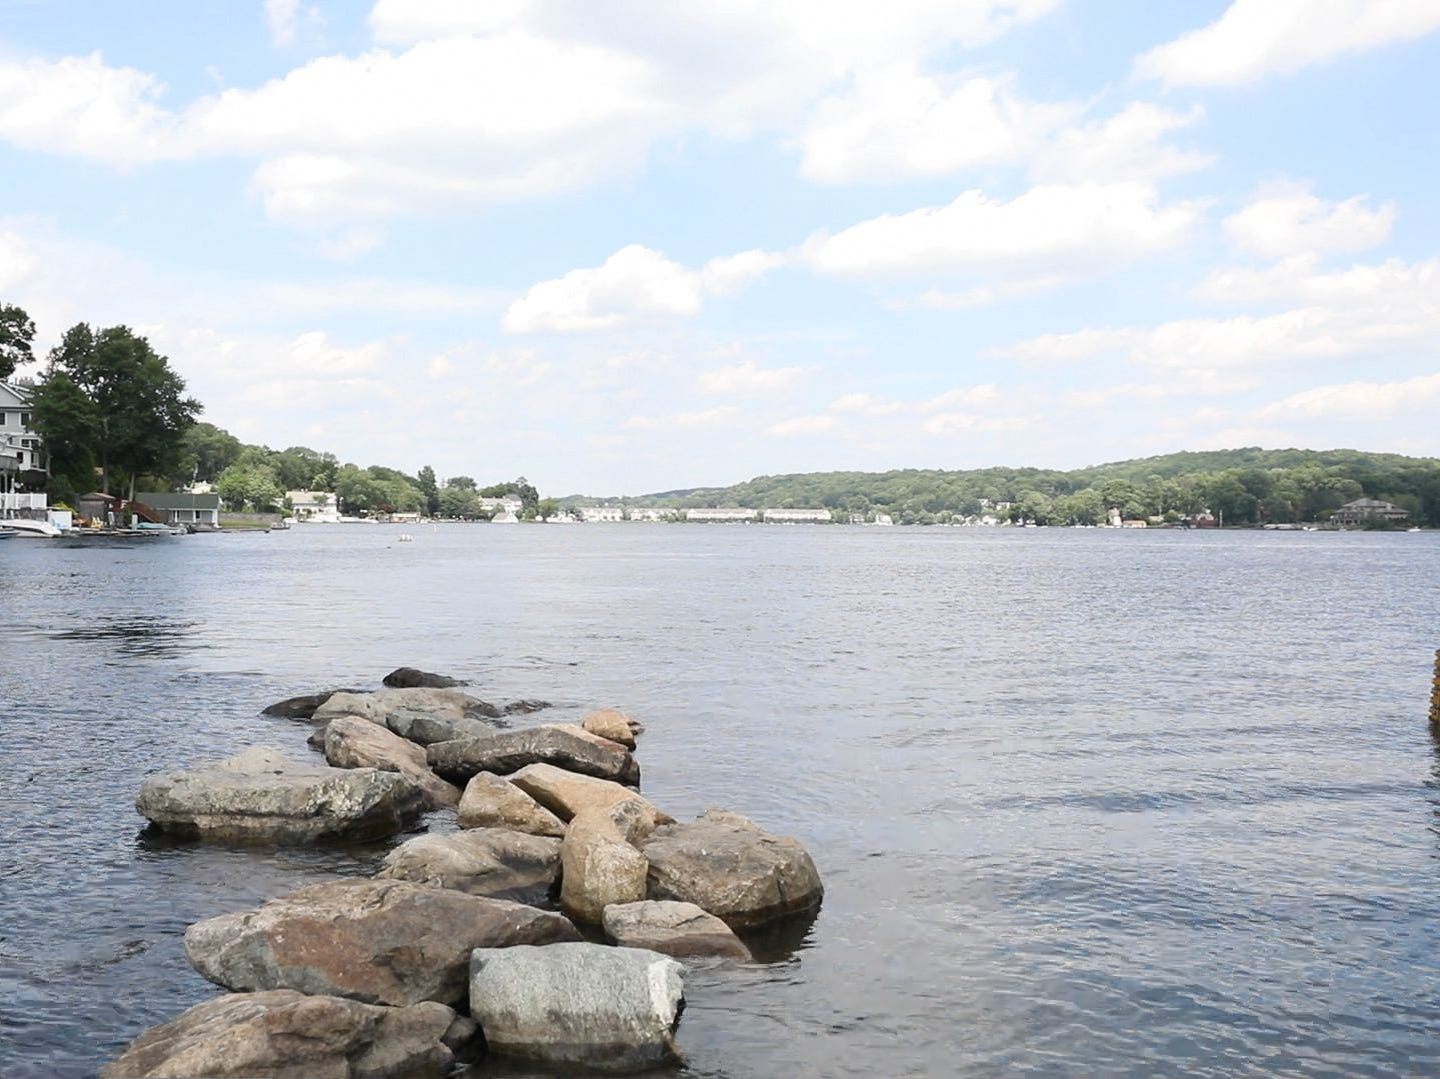 Lake Hopatcong the source of water for the Morris Canal.